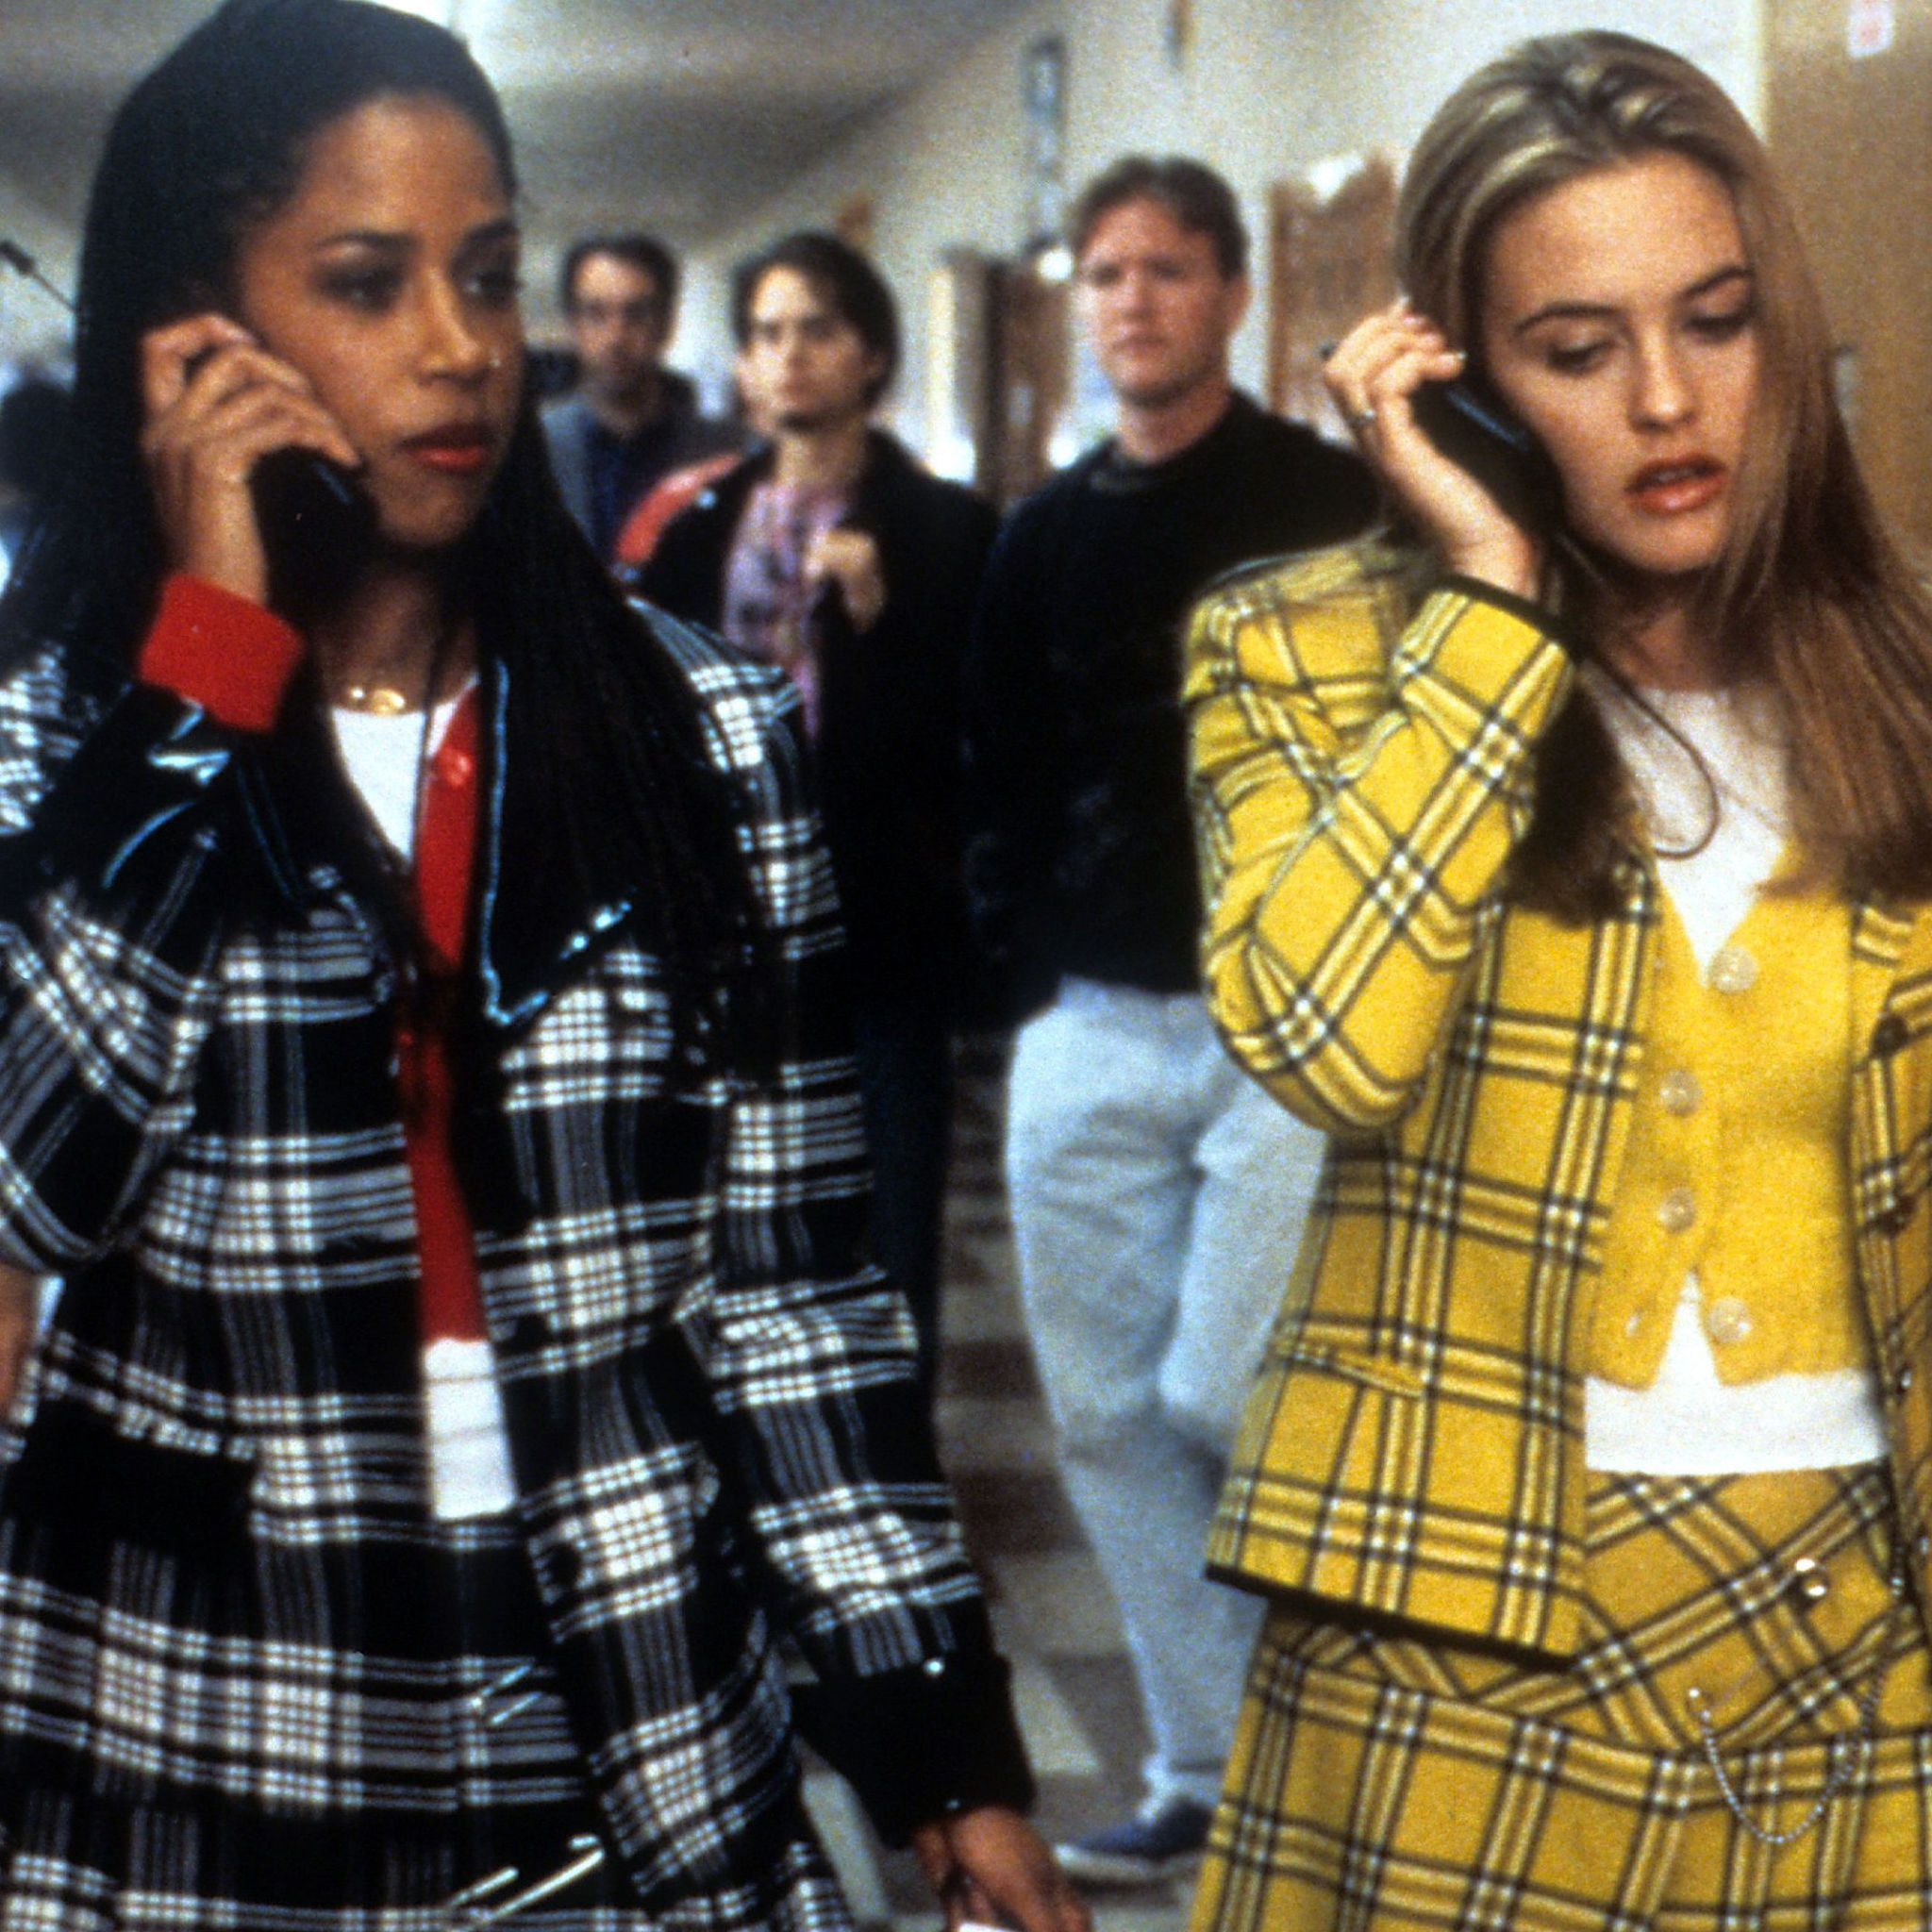 Clueless Halloween costume | ELLE UK  sc 1 st  Elle & 14 Halloween Costume Ideas Inspired By Pop Culture